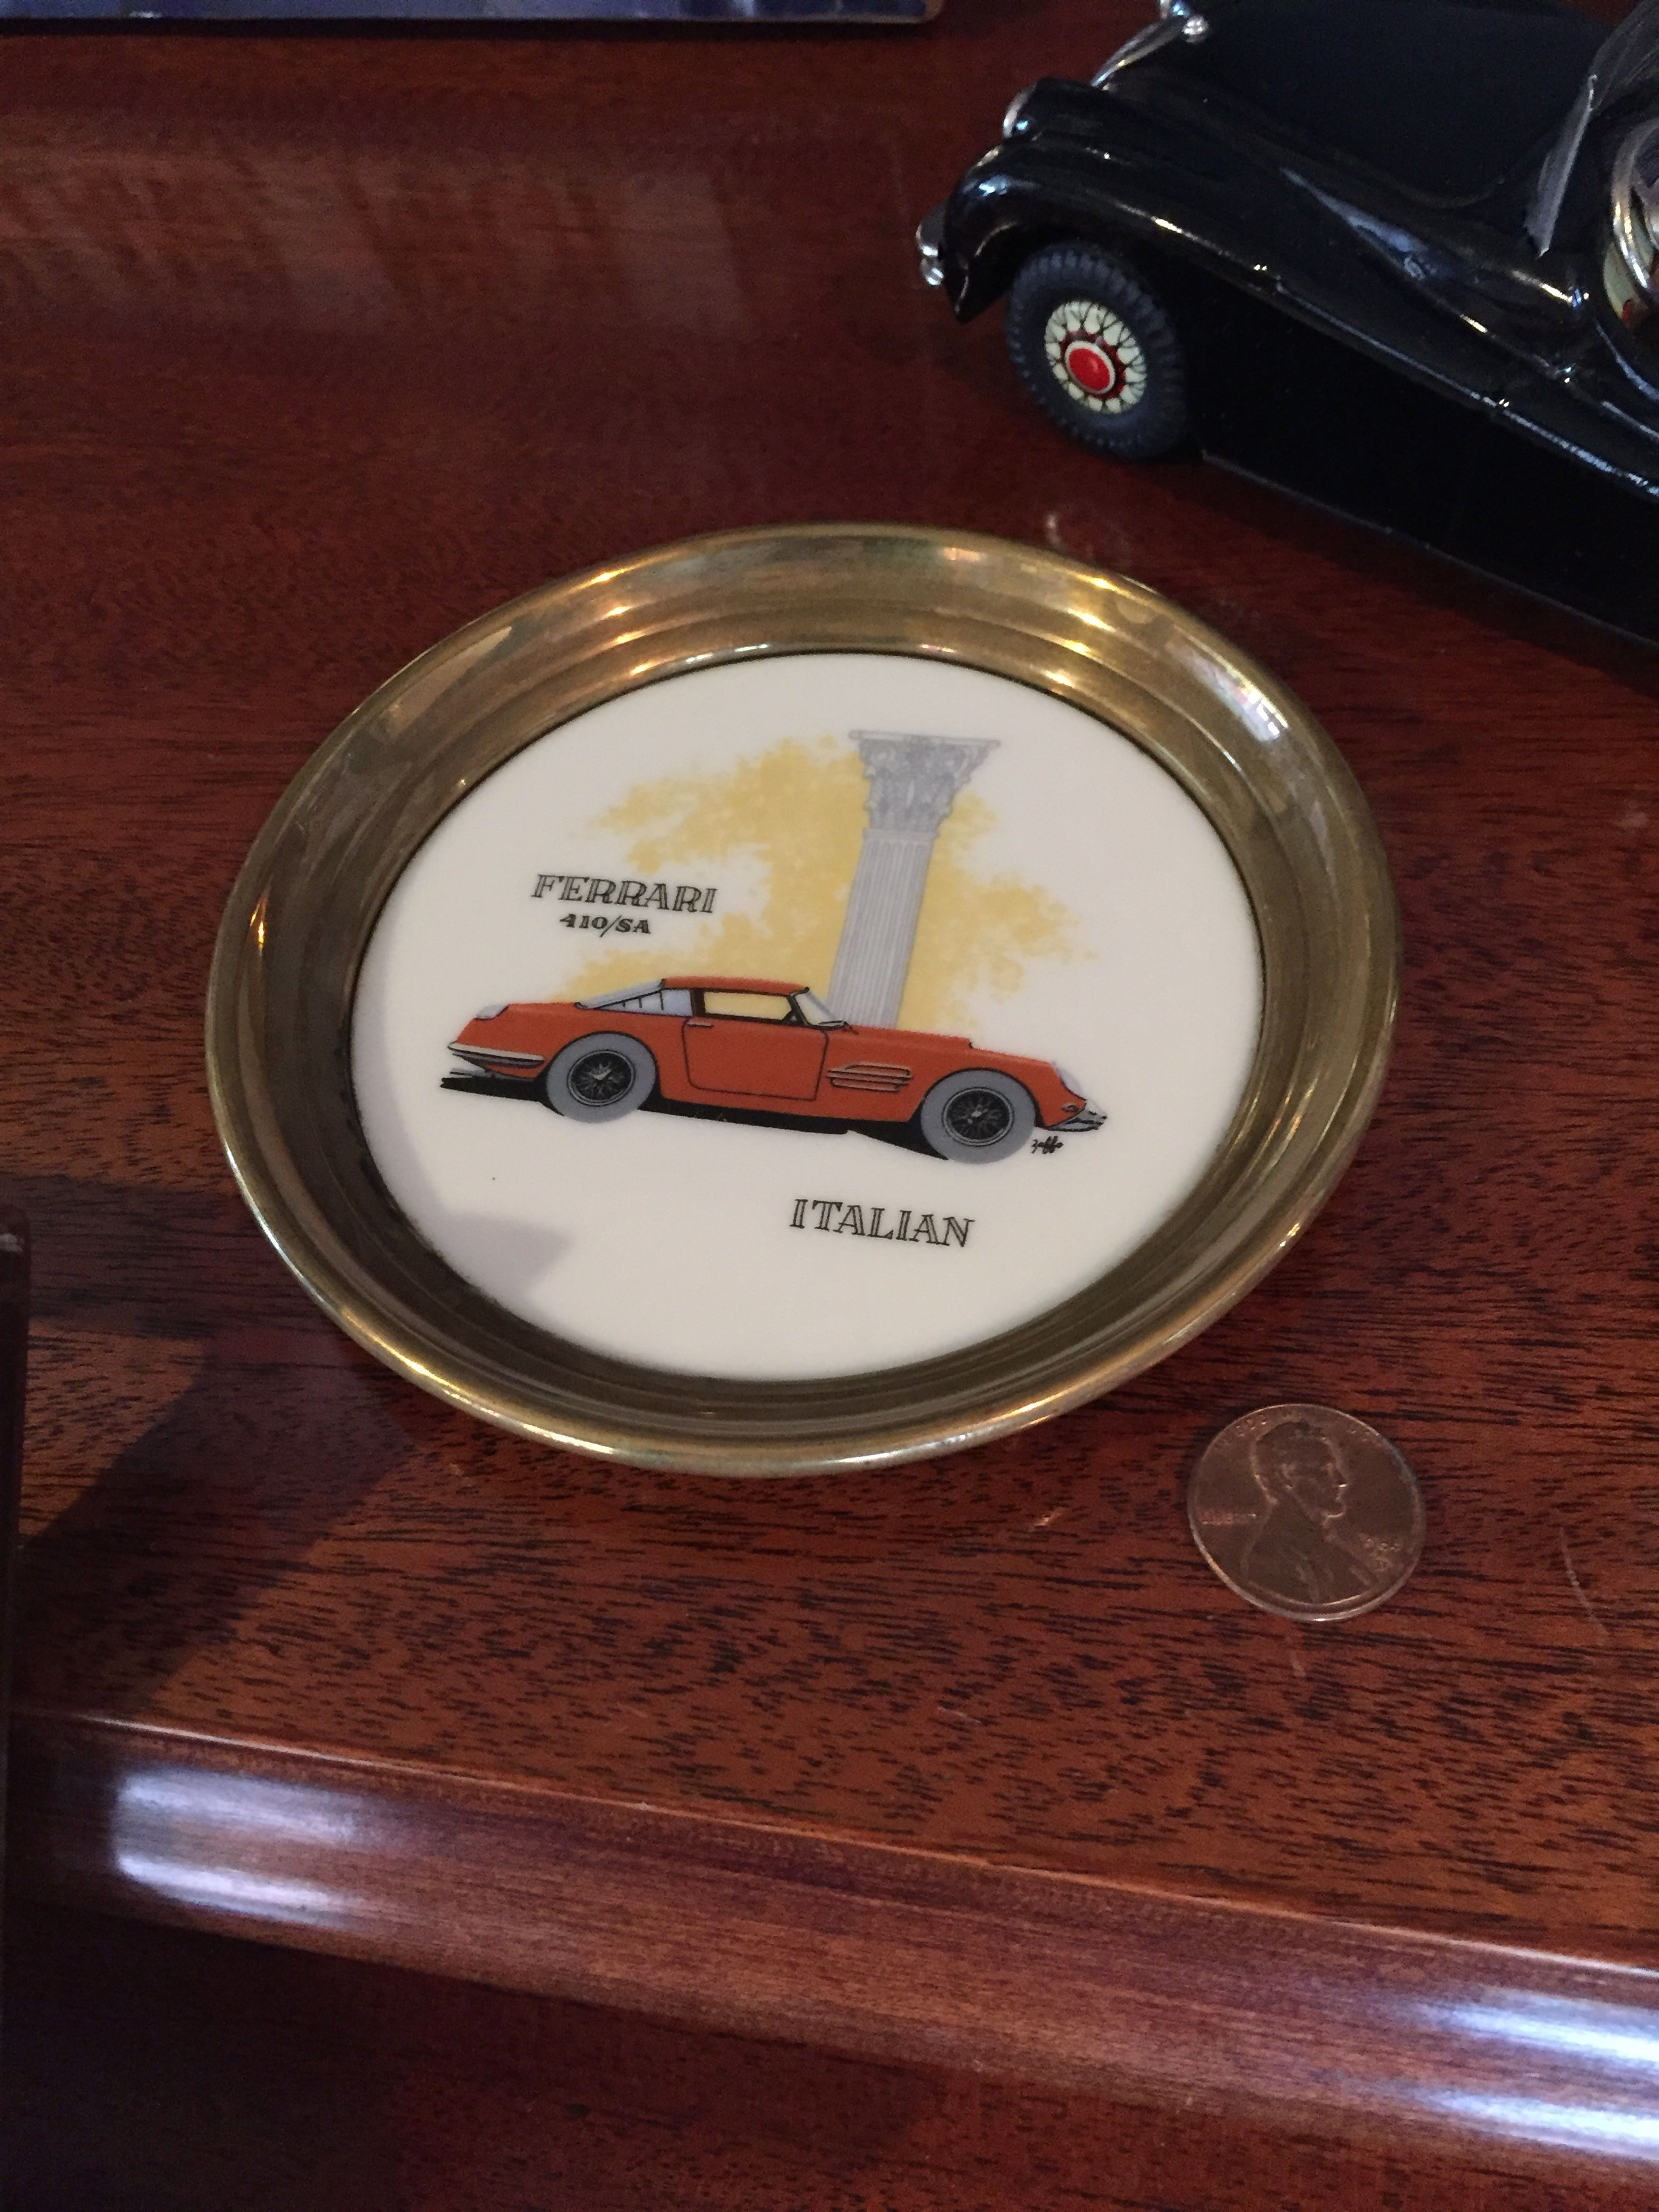 Ferrari 410 Super America Vintage Wine Bottle Coaster